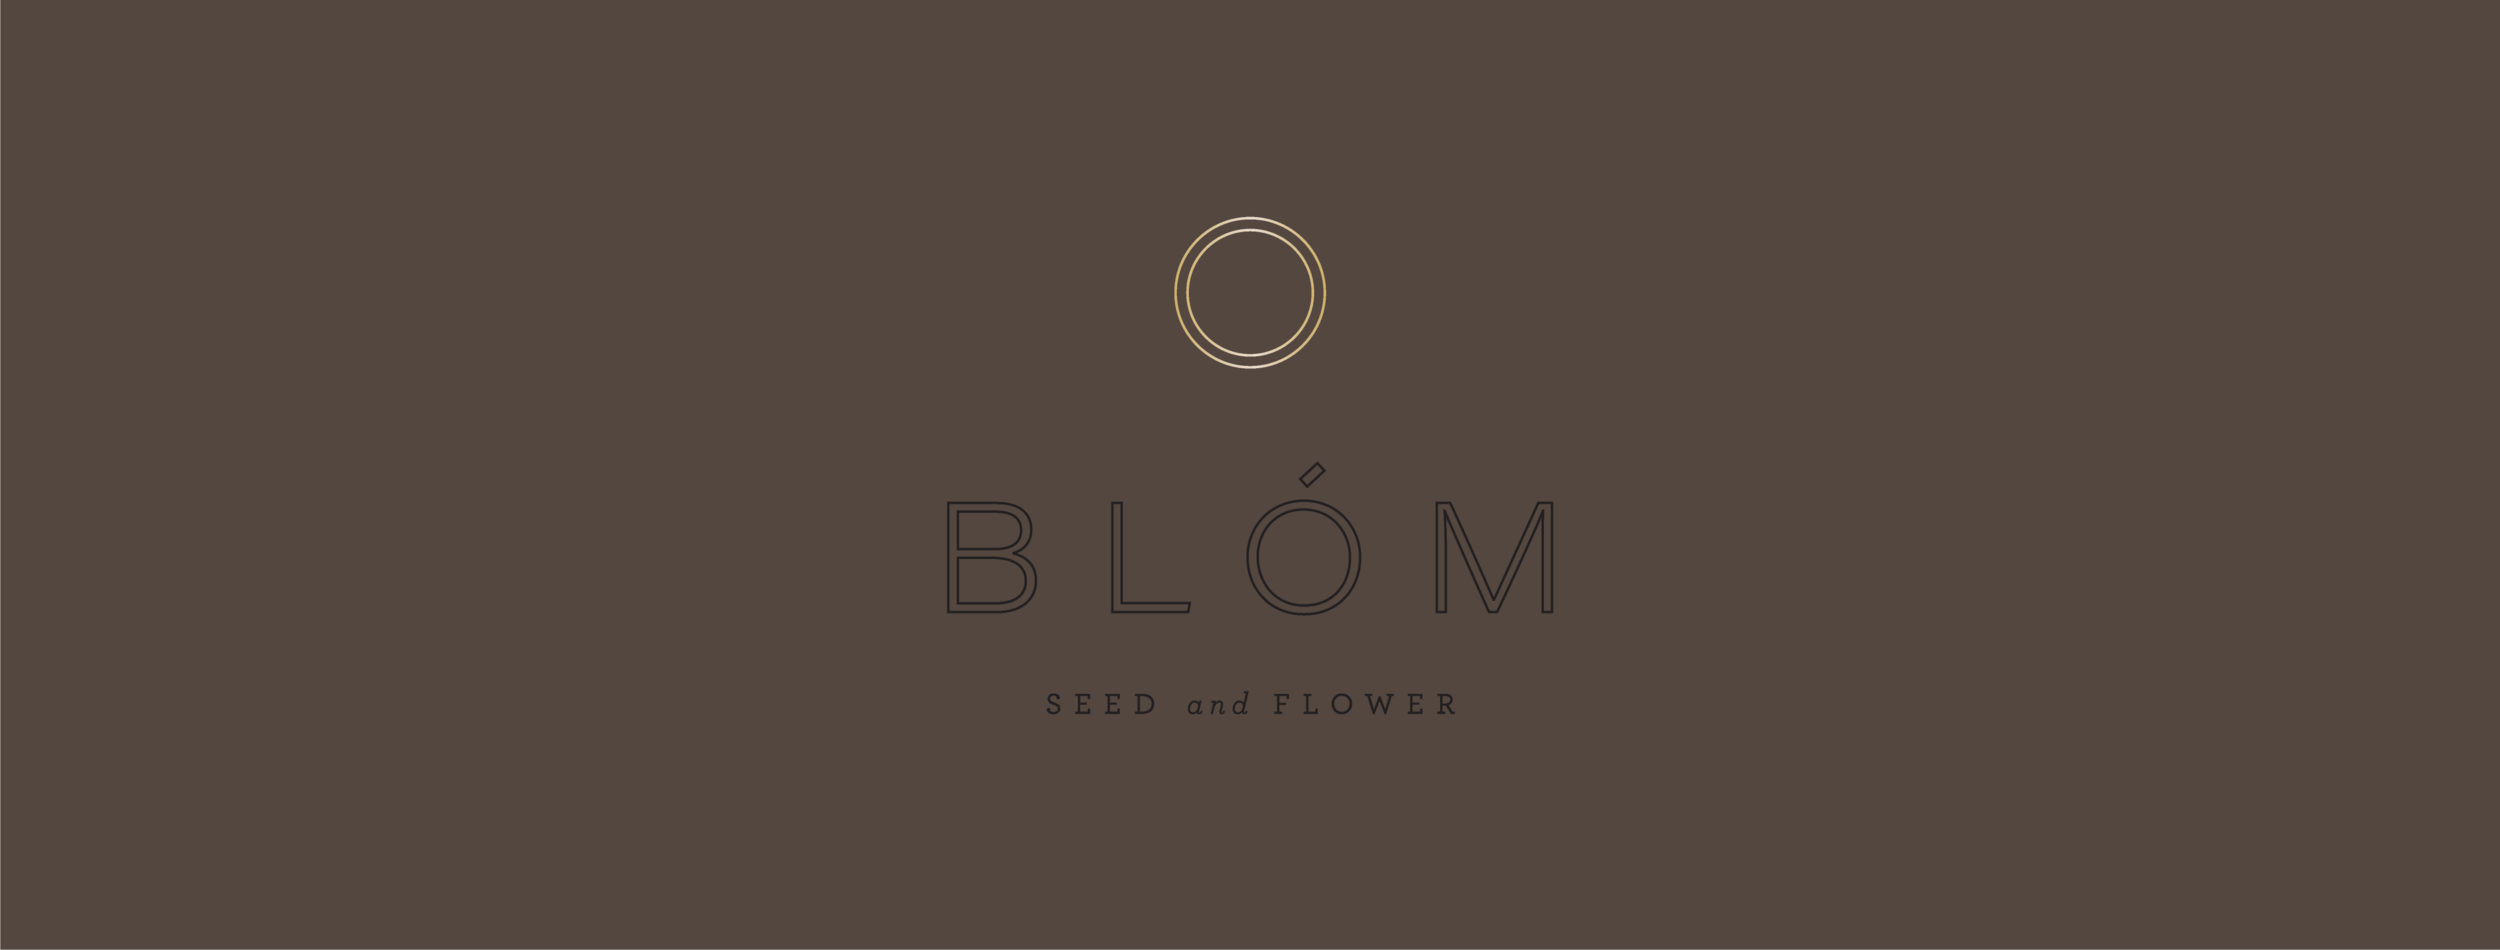 blombrand-01.png